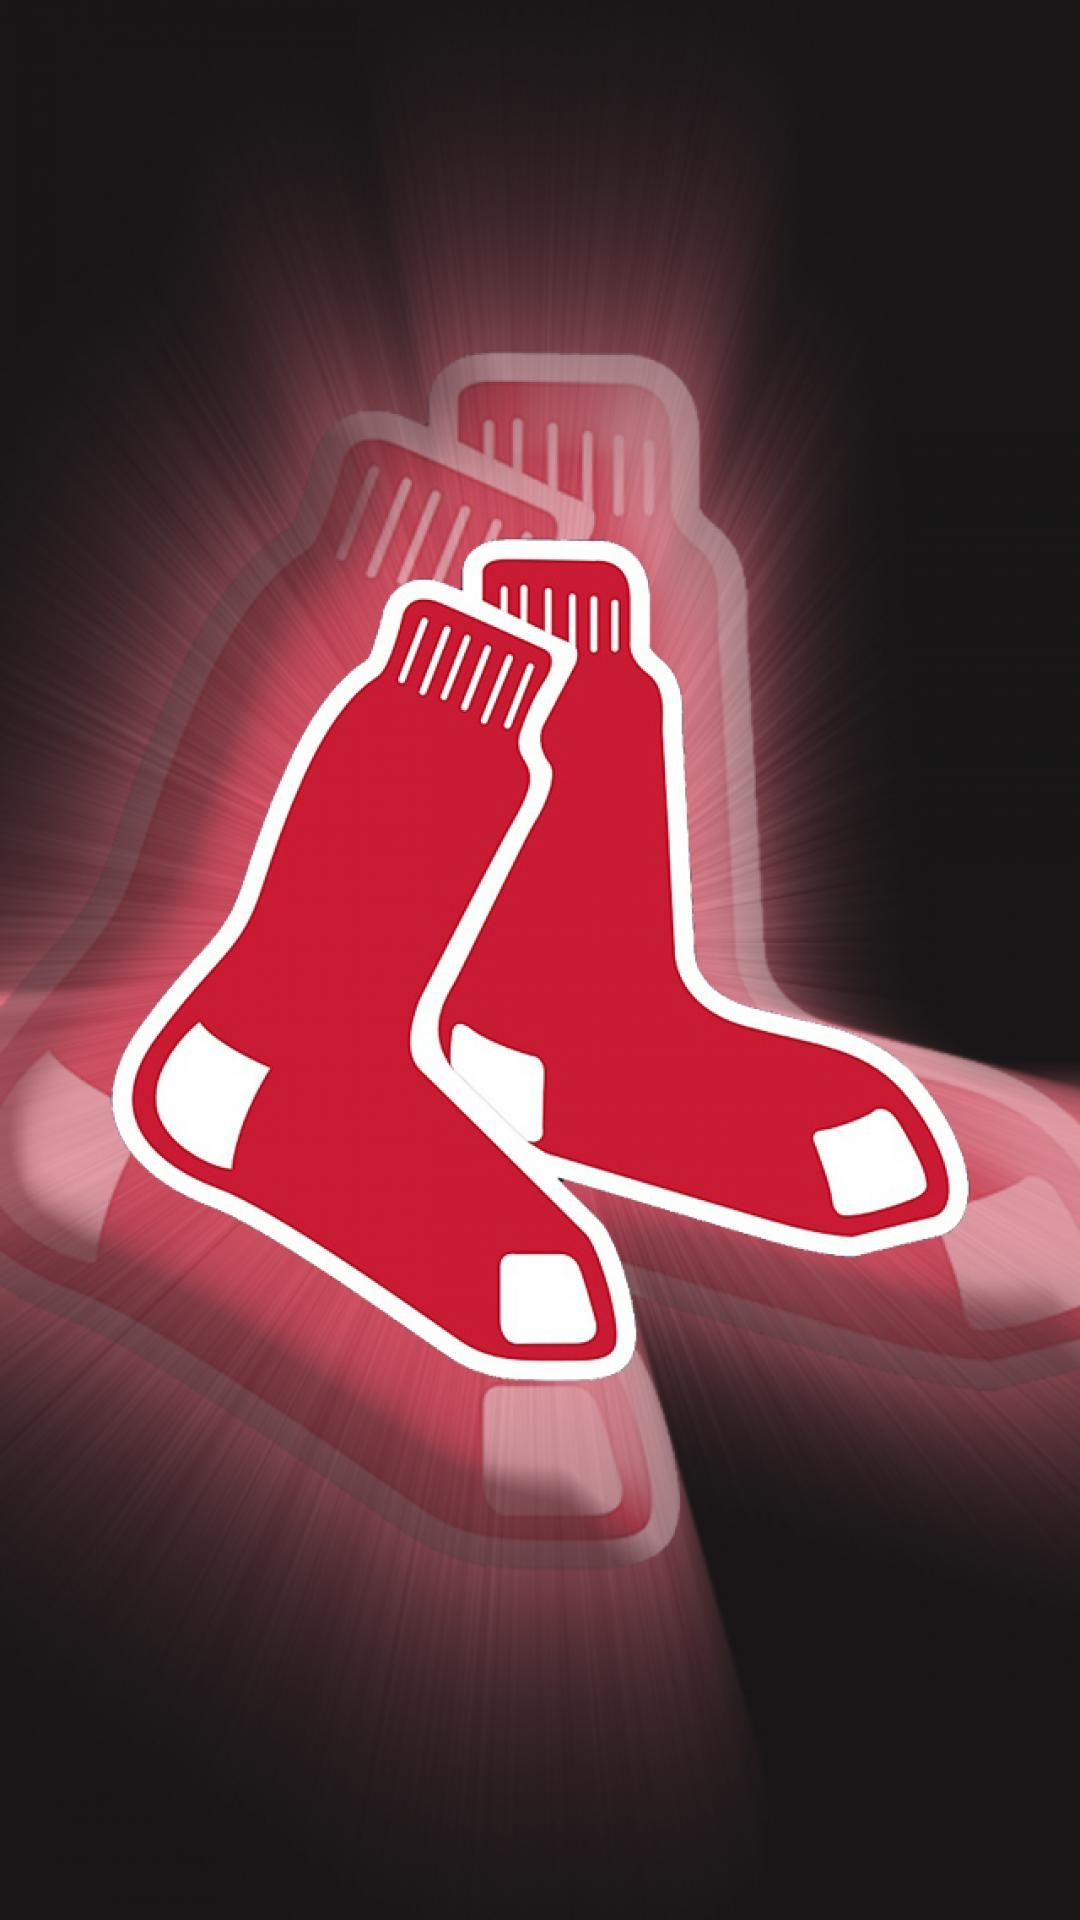 Iphone 6 Wallpaper Boston Red Sox Logo Red Sox Logo Red Sox Wallpaper